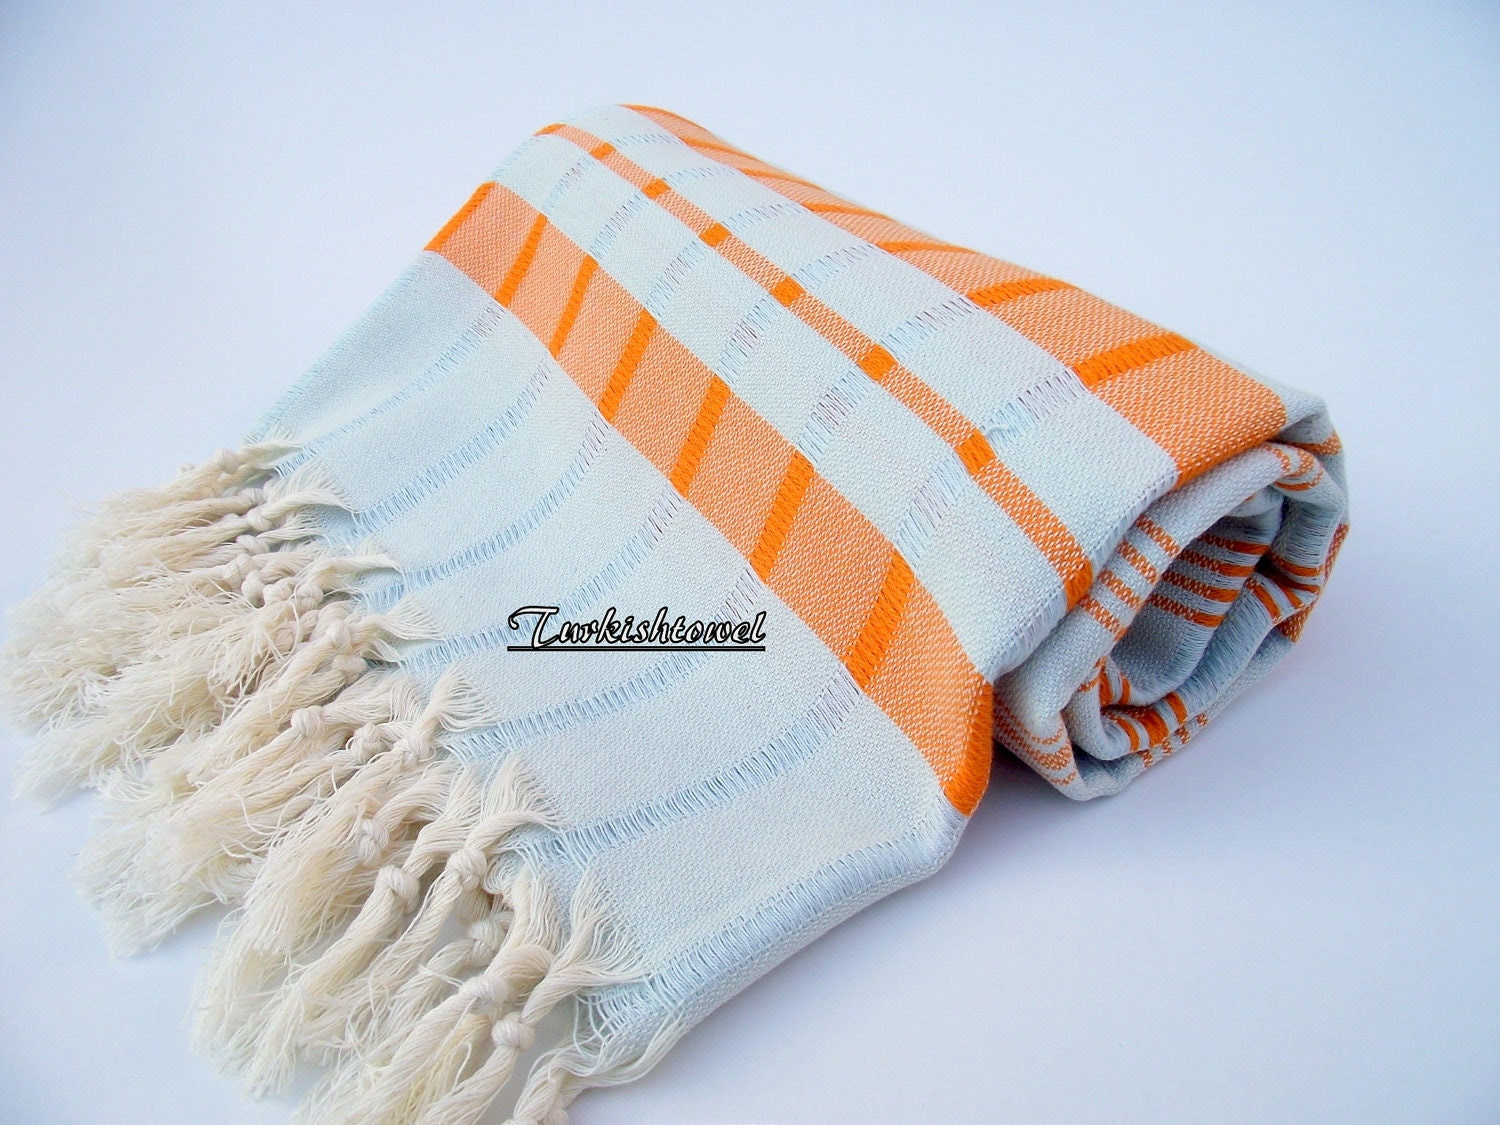 High Quality Hand Woven Turkish Cotton Bath,Beach,Pool,Spa,Yoga,Travel Towel or Sarong-Orange Stripes on Mint Checked